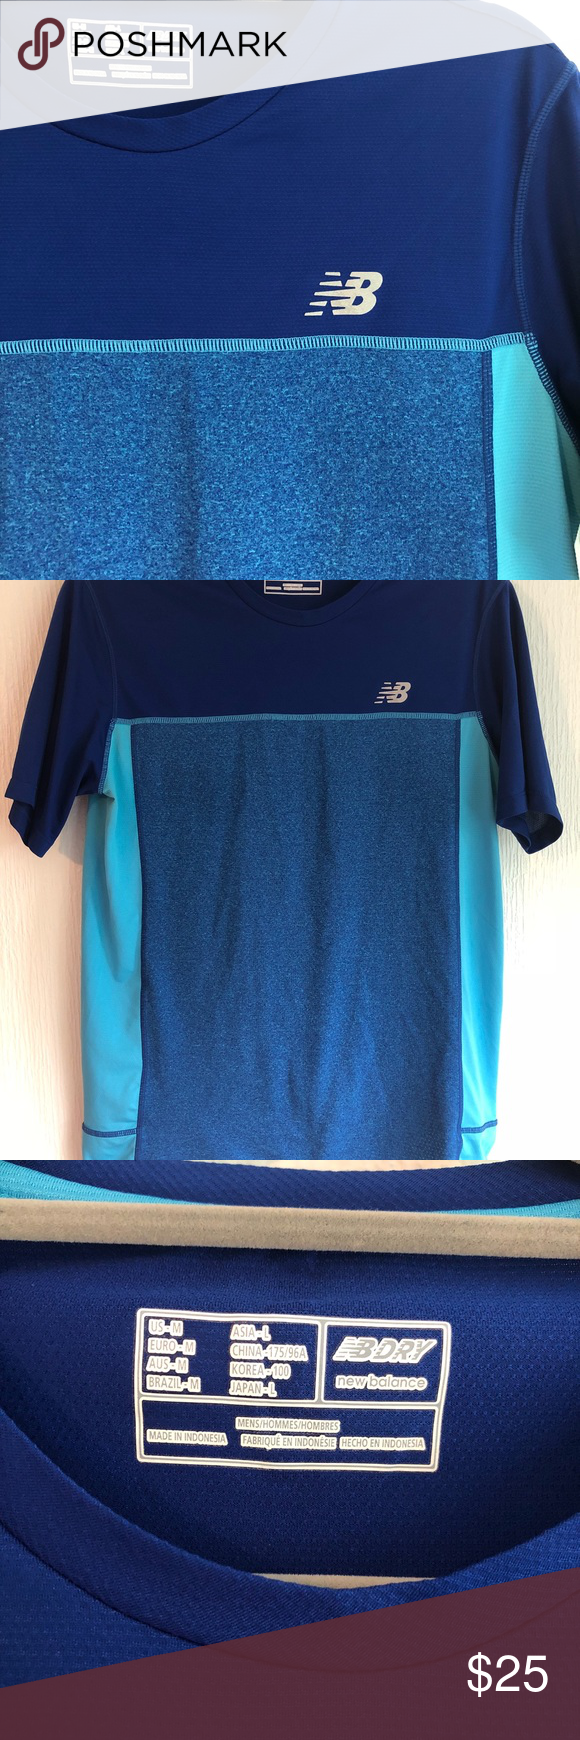 14ce01b7c379f Men's NB Dry Fit Athletic T-Shirt Excellent condition New Balance Dry fit  athletic t-shirt. Men's size medium. Perfect for the gym, running, & sports,  ...